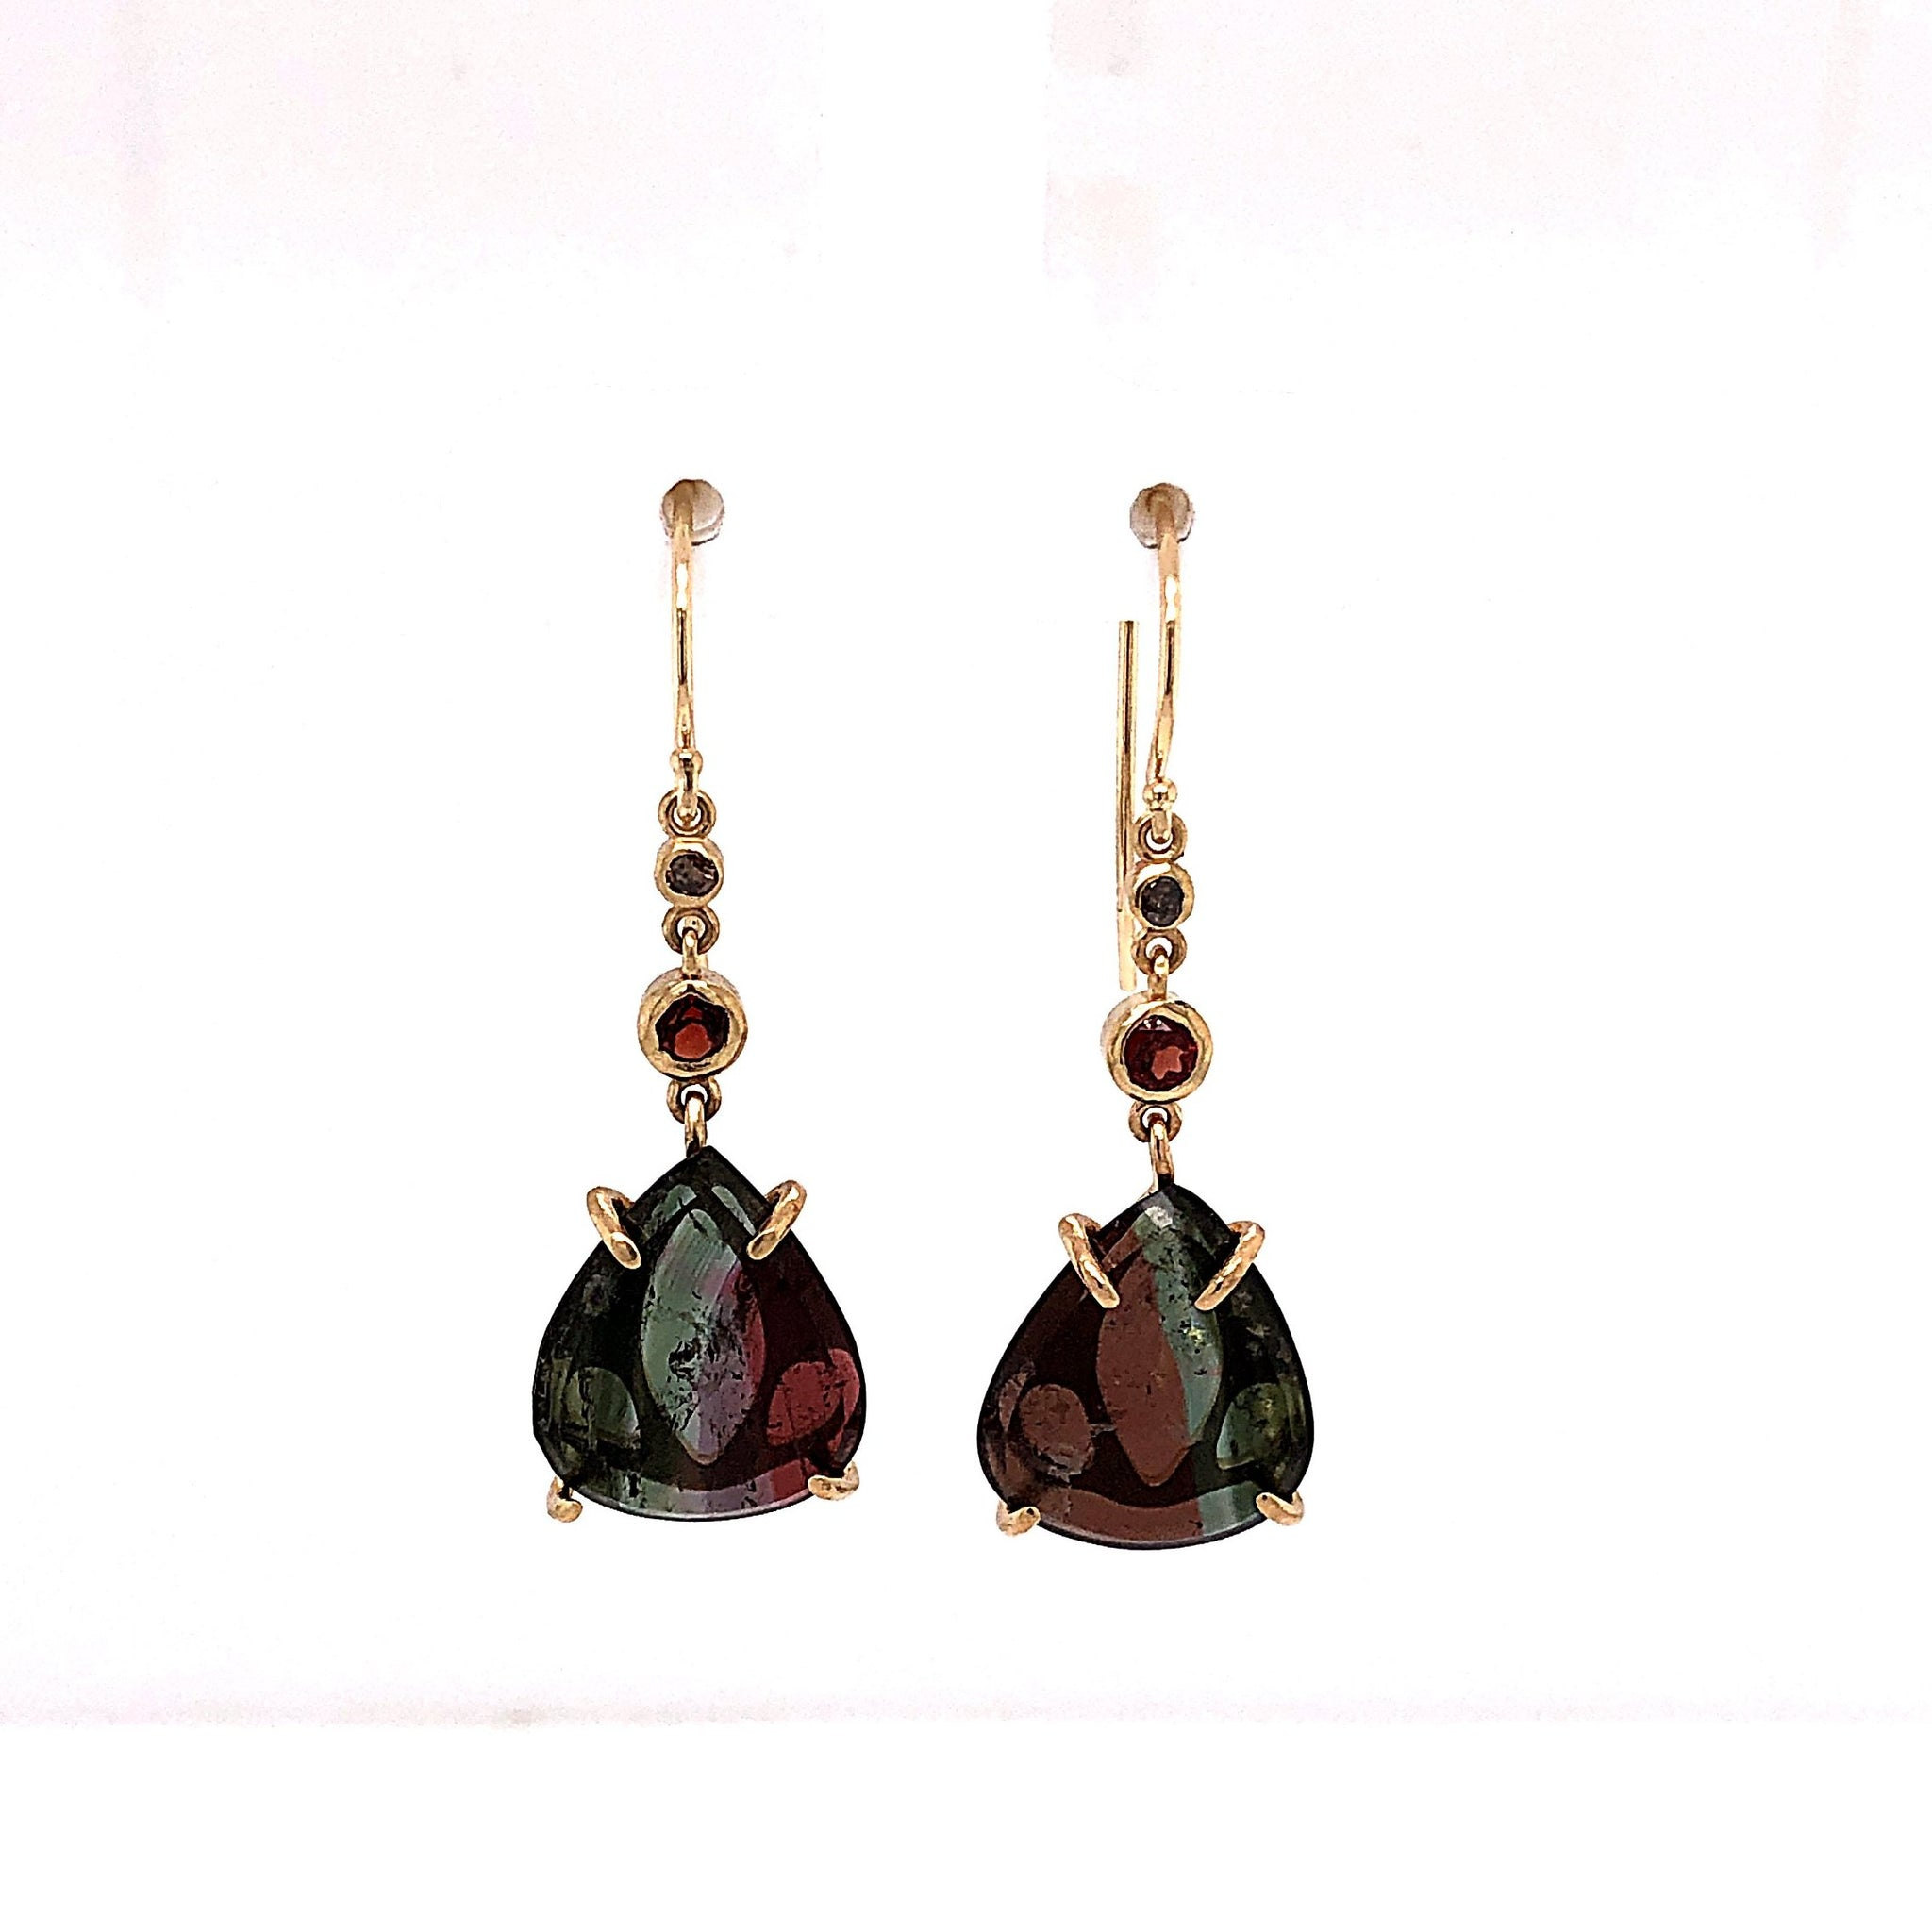 Tourmaline Earrings with Diamonds and Garnets, Handmade 14k Gold (One-of-a-Kind)